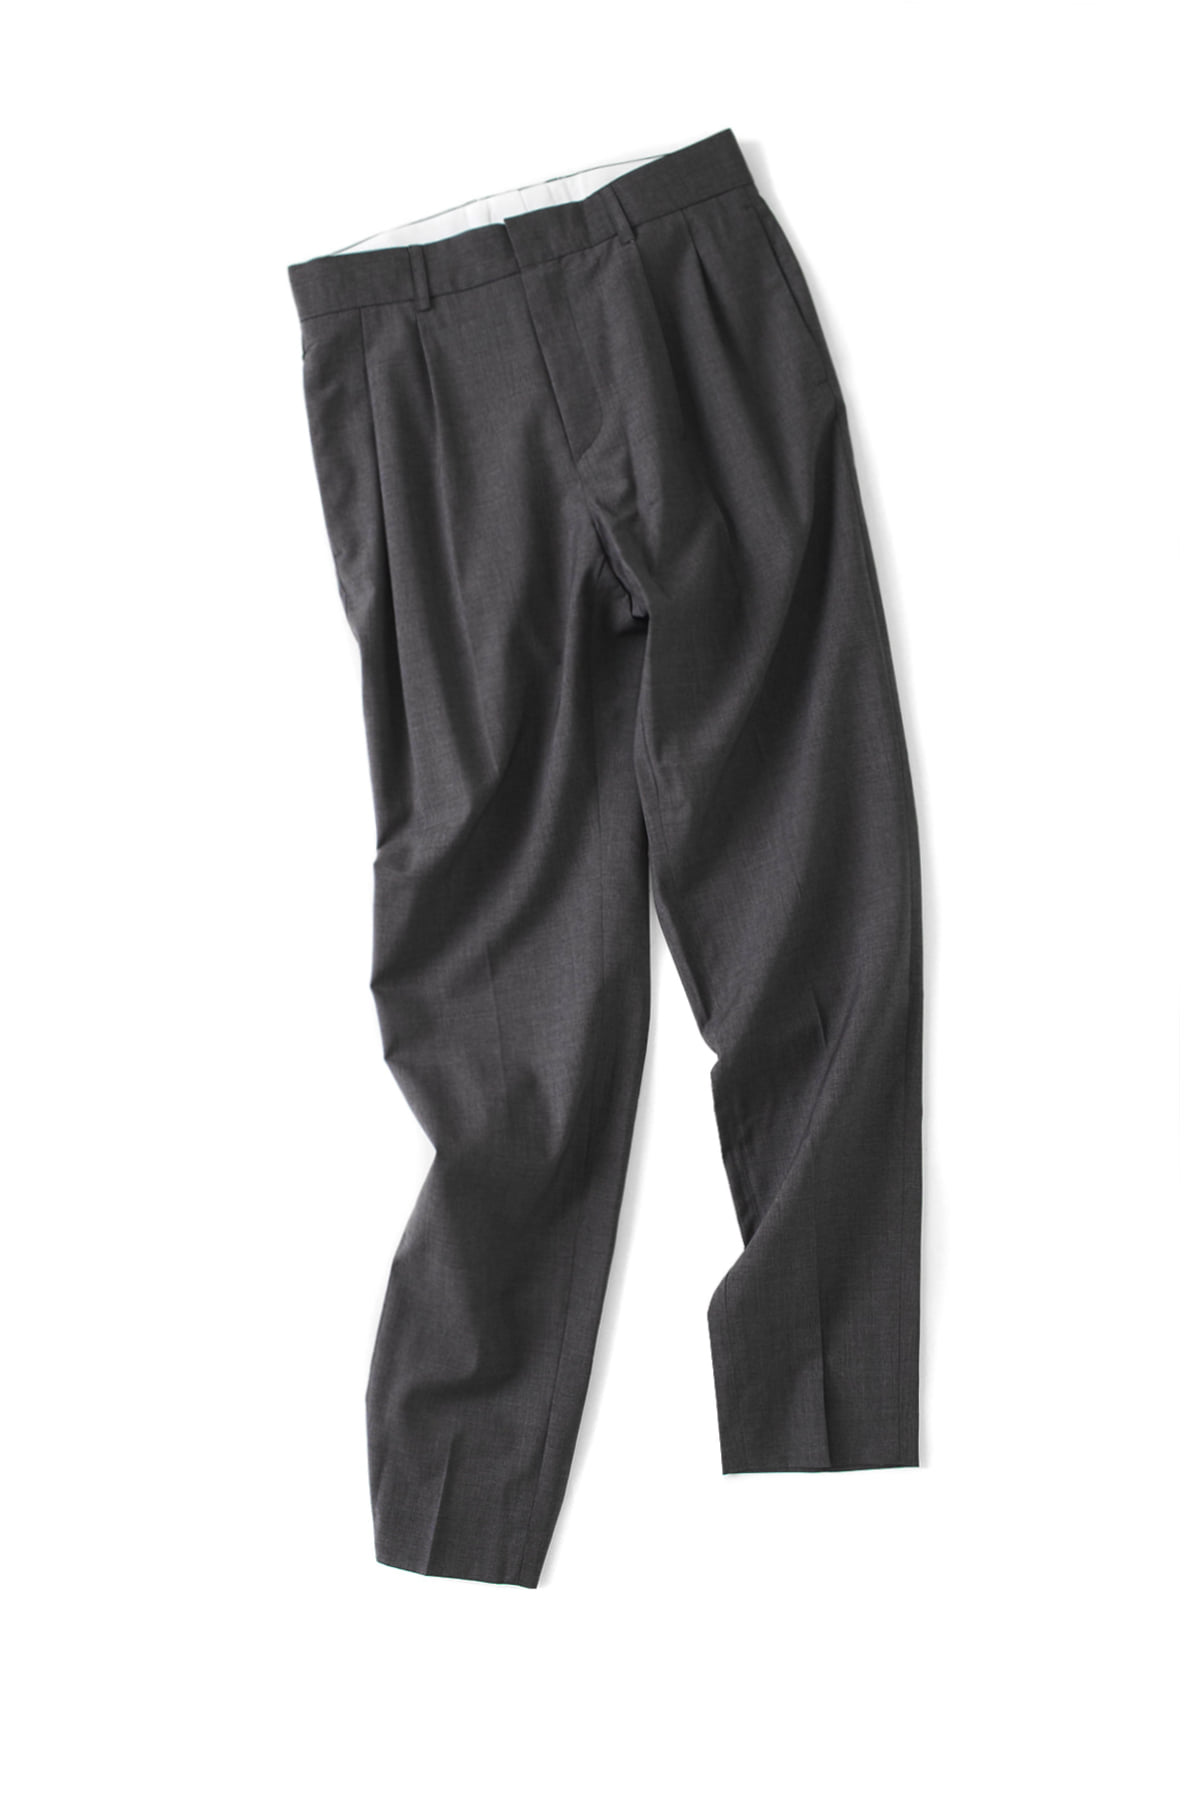 HARMONY : Phil Trouser (Dark Grey)